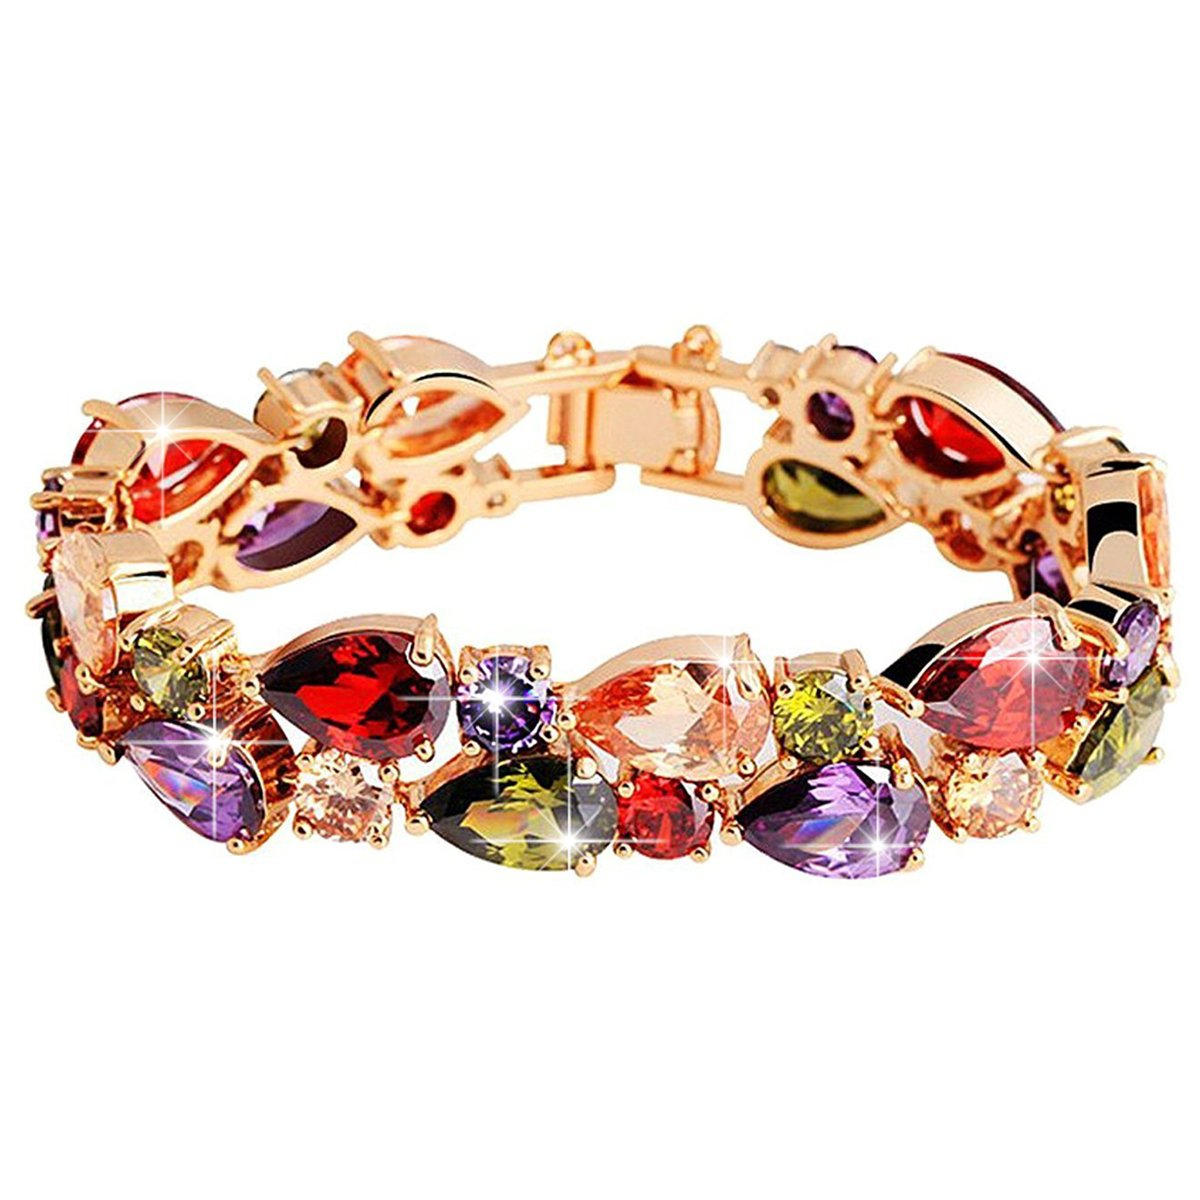 BAMOER Rose Gold Plated Multicolor Cubic Zirconia Bracelet for Women Girls Perfect Gift for Her 7.5 Inches